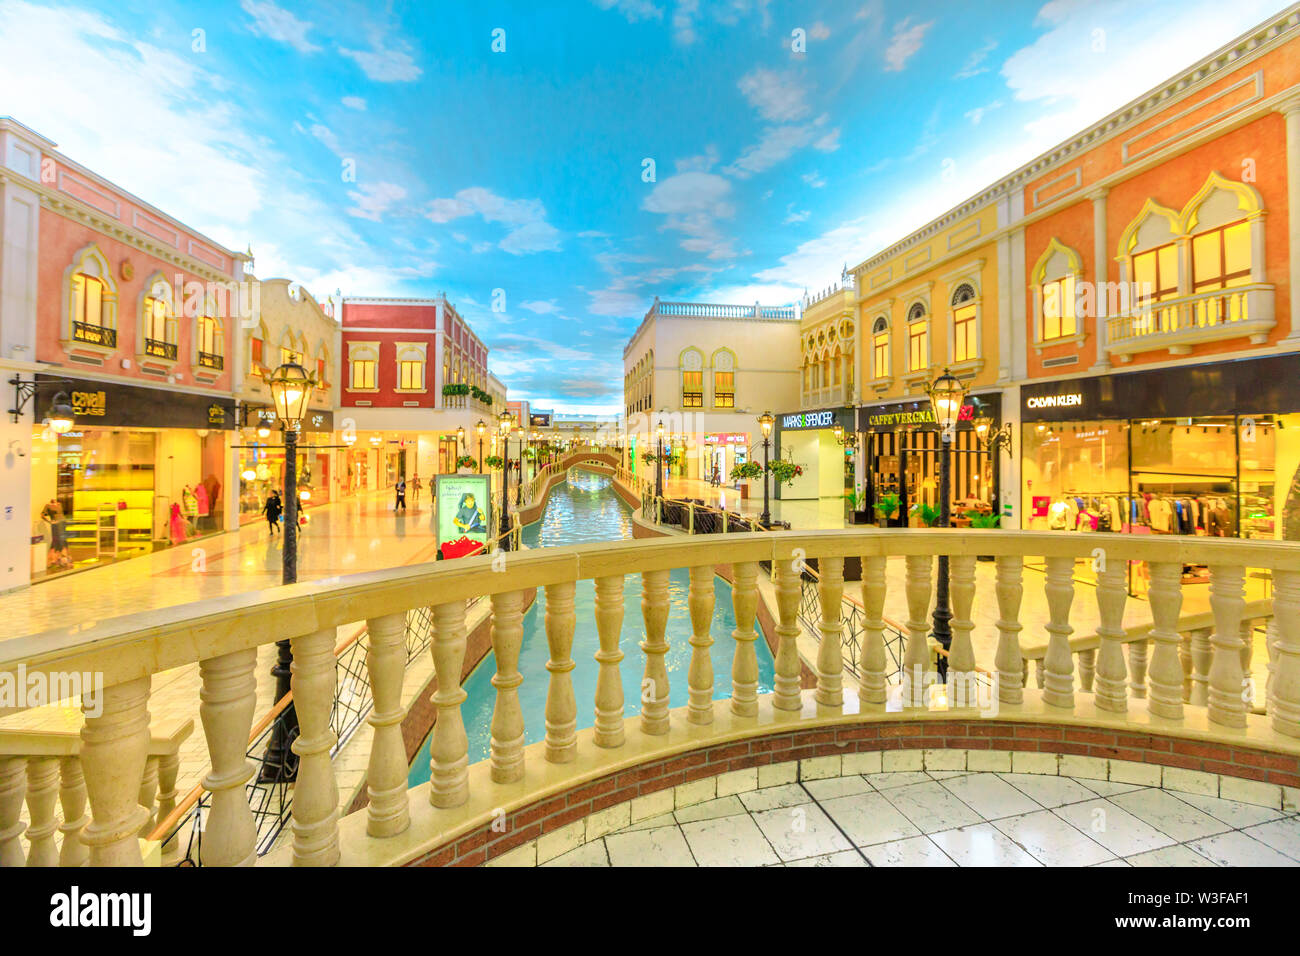 Doha, Qatar - February 21, 2019: balcony at venice canal in Villaggio Mall, a shopping center in Aspire Zone. Luxury brands, expensive stores and excl - Stock Image